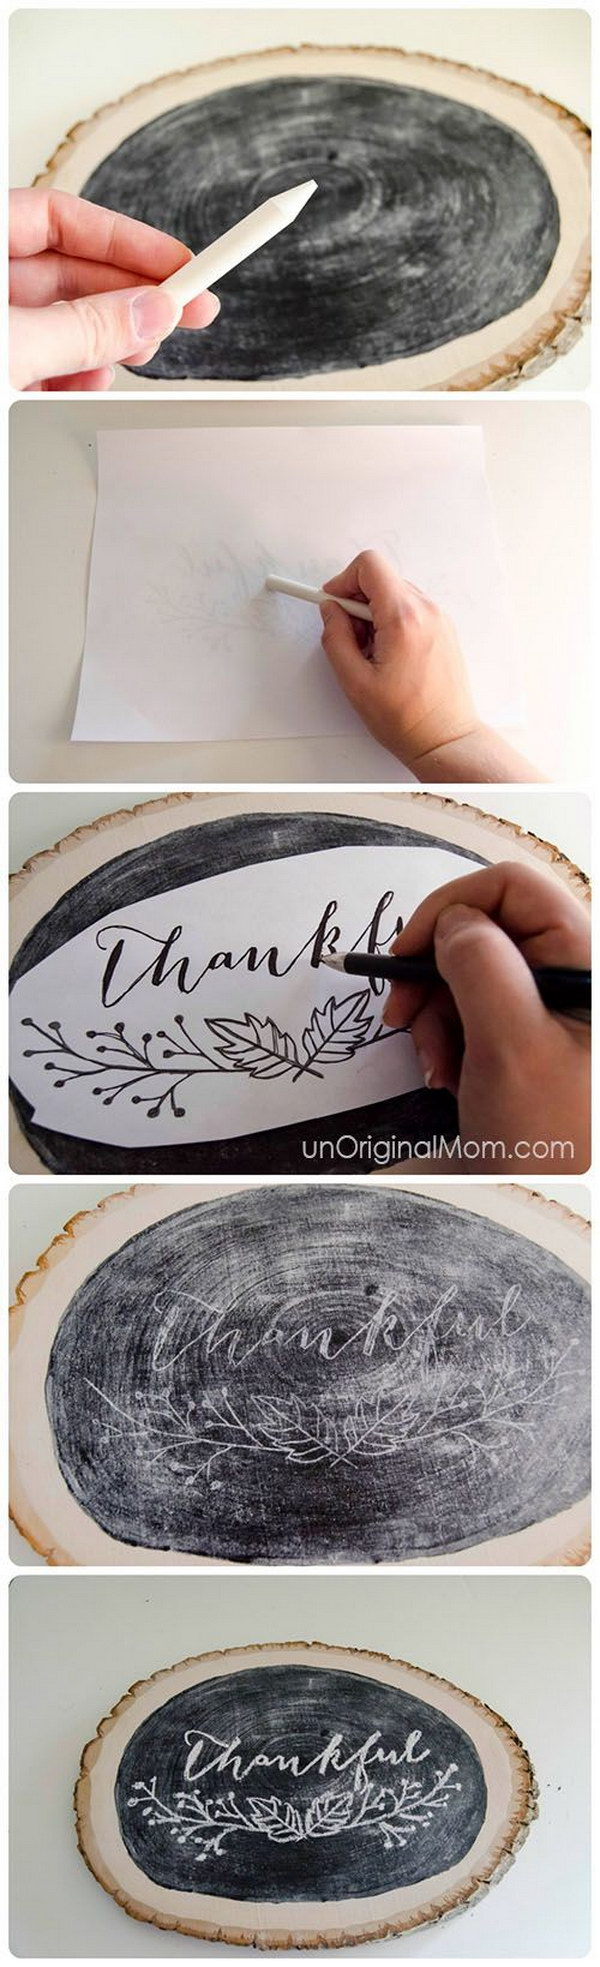 Thankful Letter Chalkboard Wood Slice Decor.